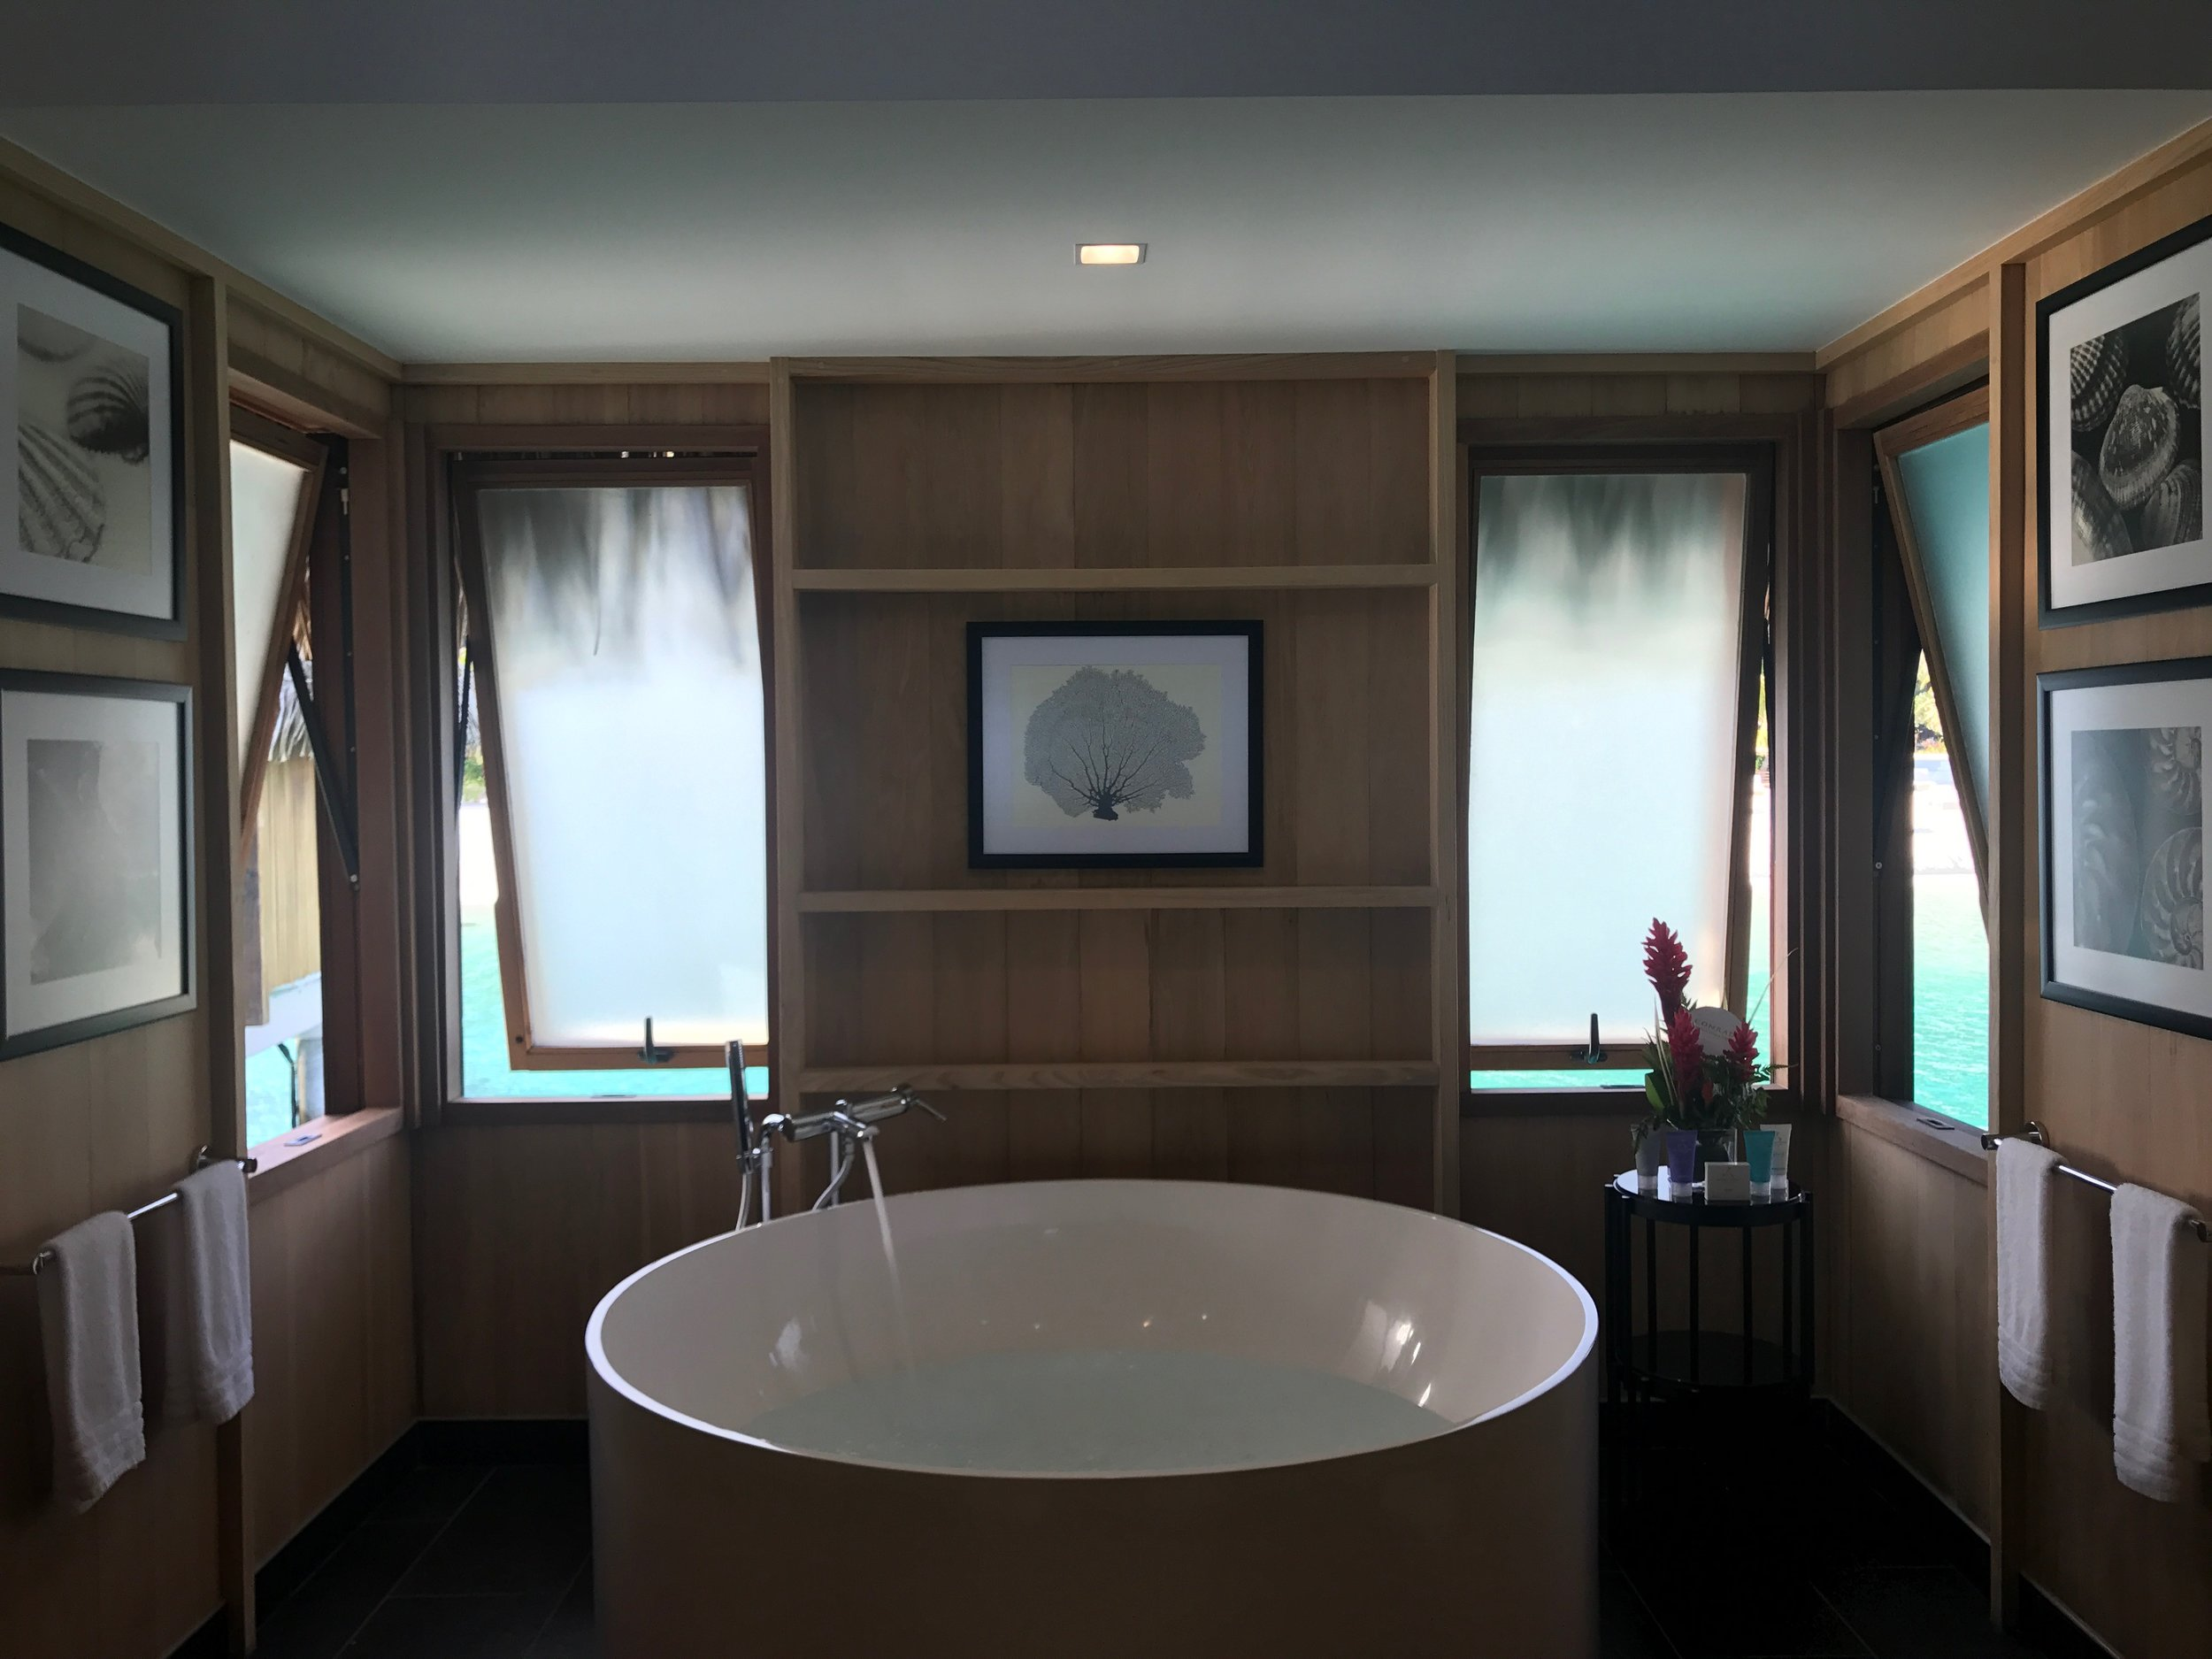 Having a large beautiful and clean bathroom is always a huge plus and oversize tub for those mama to be's who need a little pampering